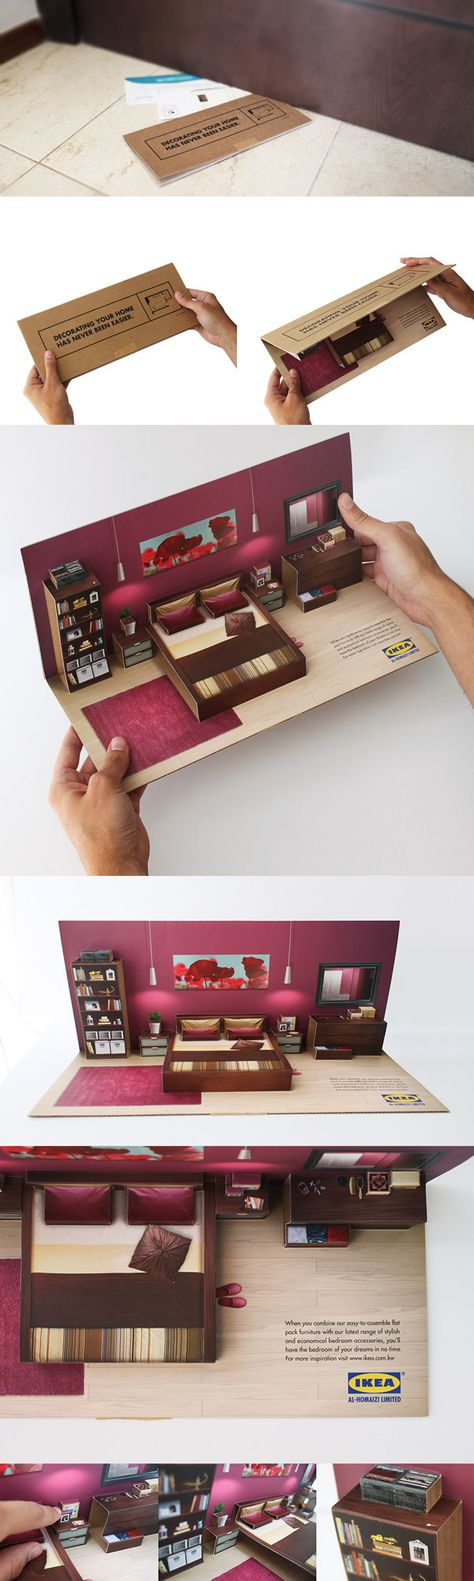 Ikea Flat Pack Direct Mailer by Leo Rosa Borges, via Behance